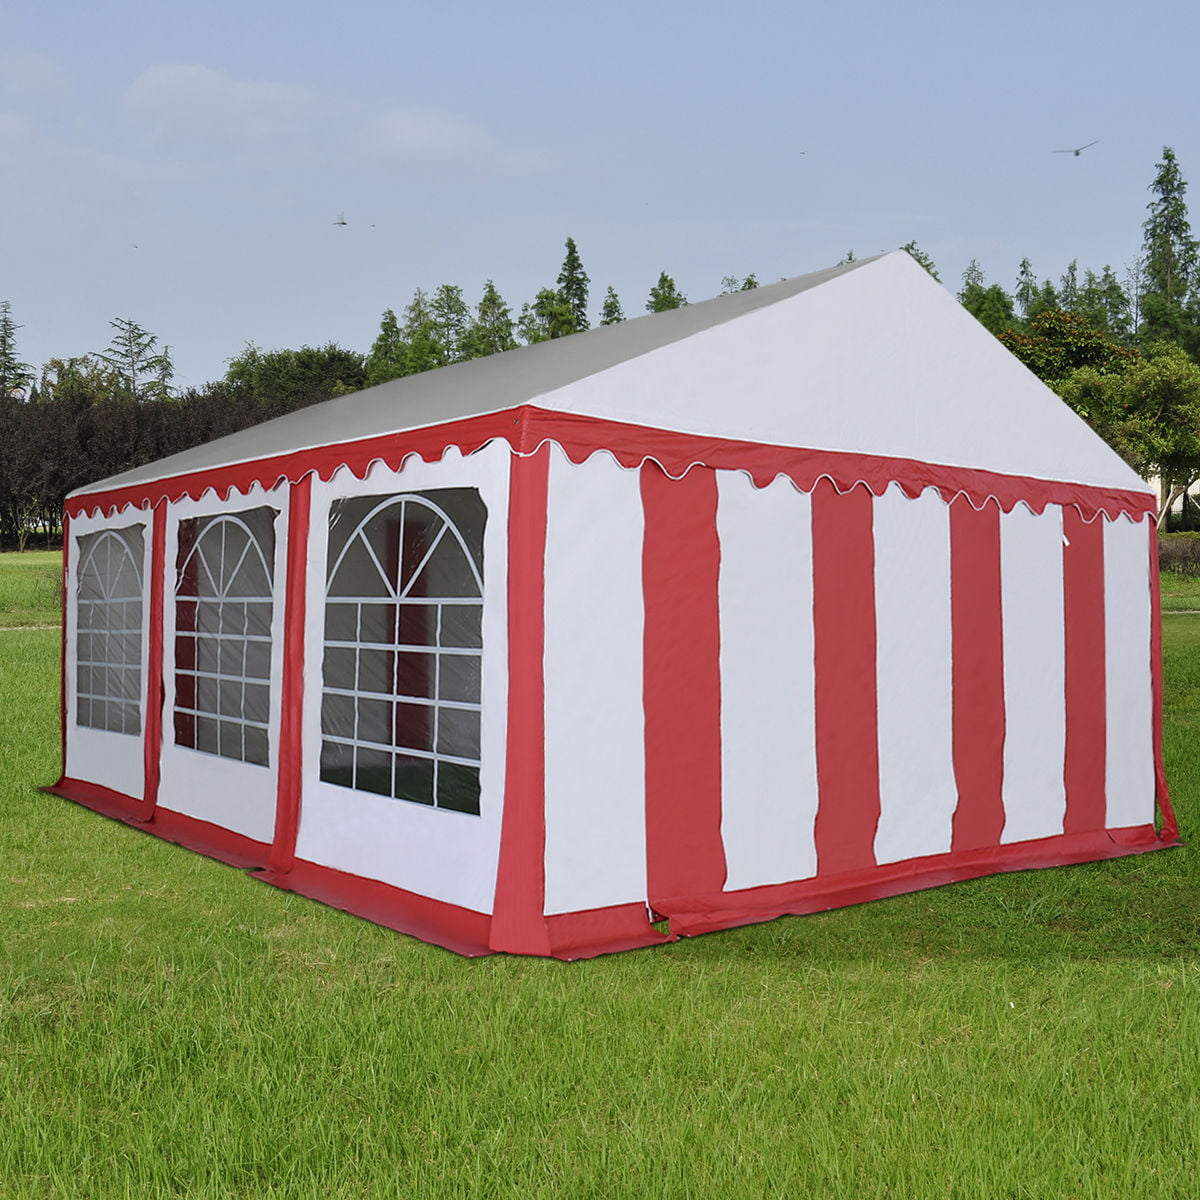 Click here to buy Costway 20'X20' PVC Tent Shelter Heavy Duty Outdoor Party Wedding Canopy Carport Red by Costway.